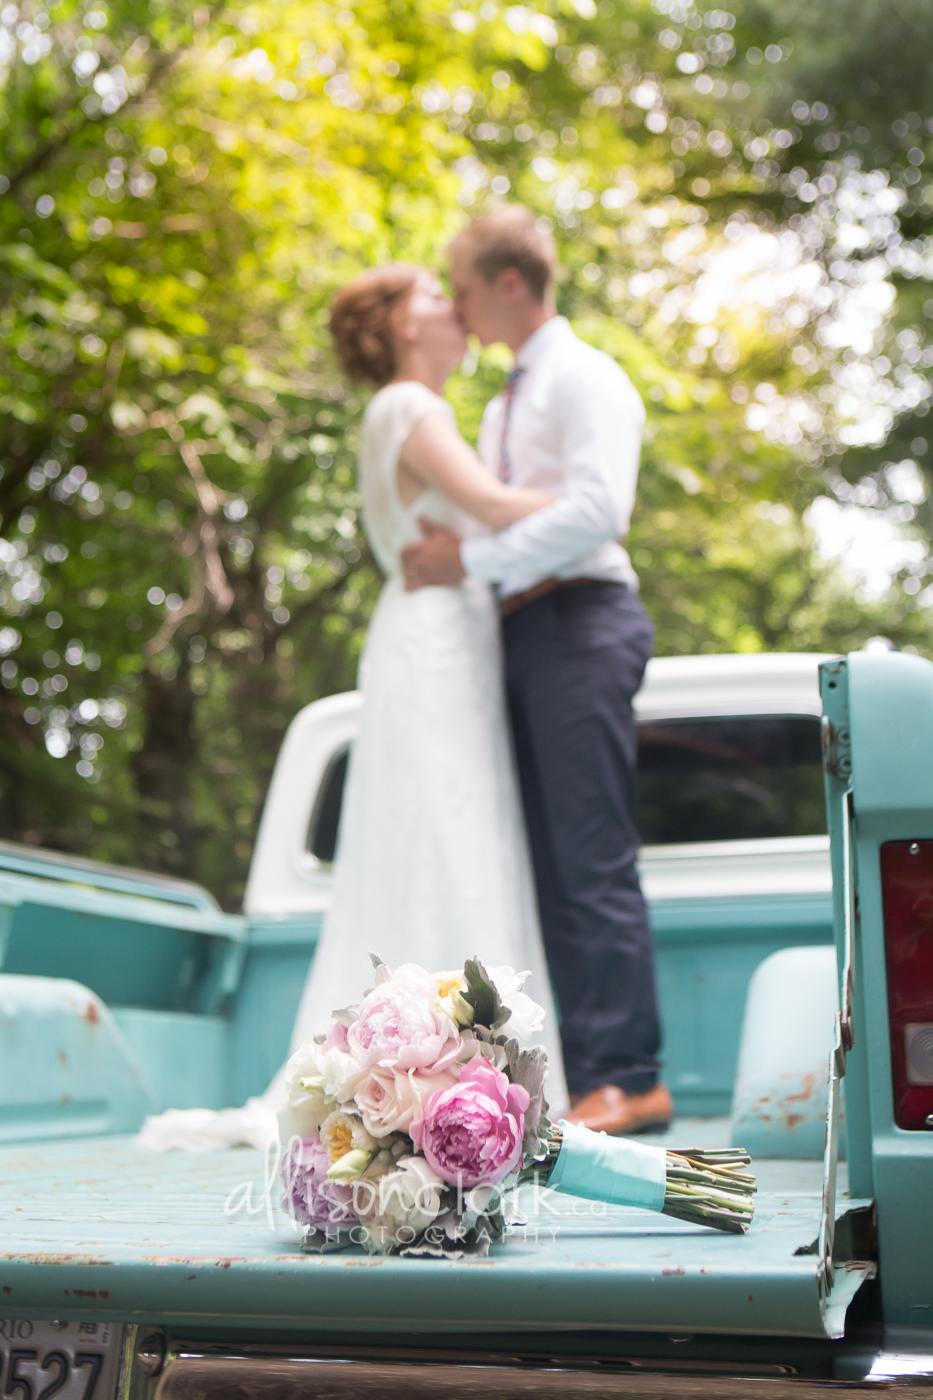 Wedding-turquoise-truck-AllisonClarkPhotography -2-2.jpg